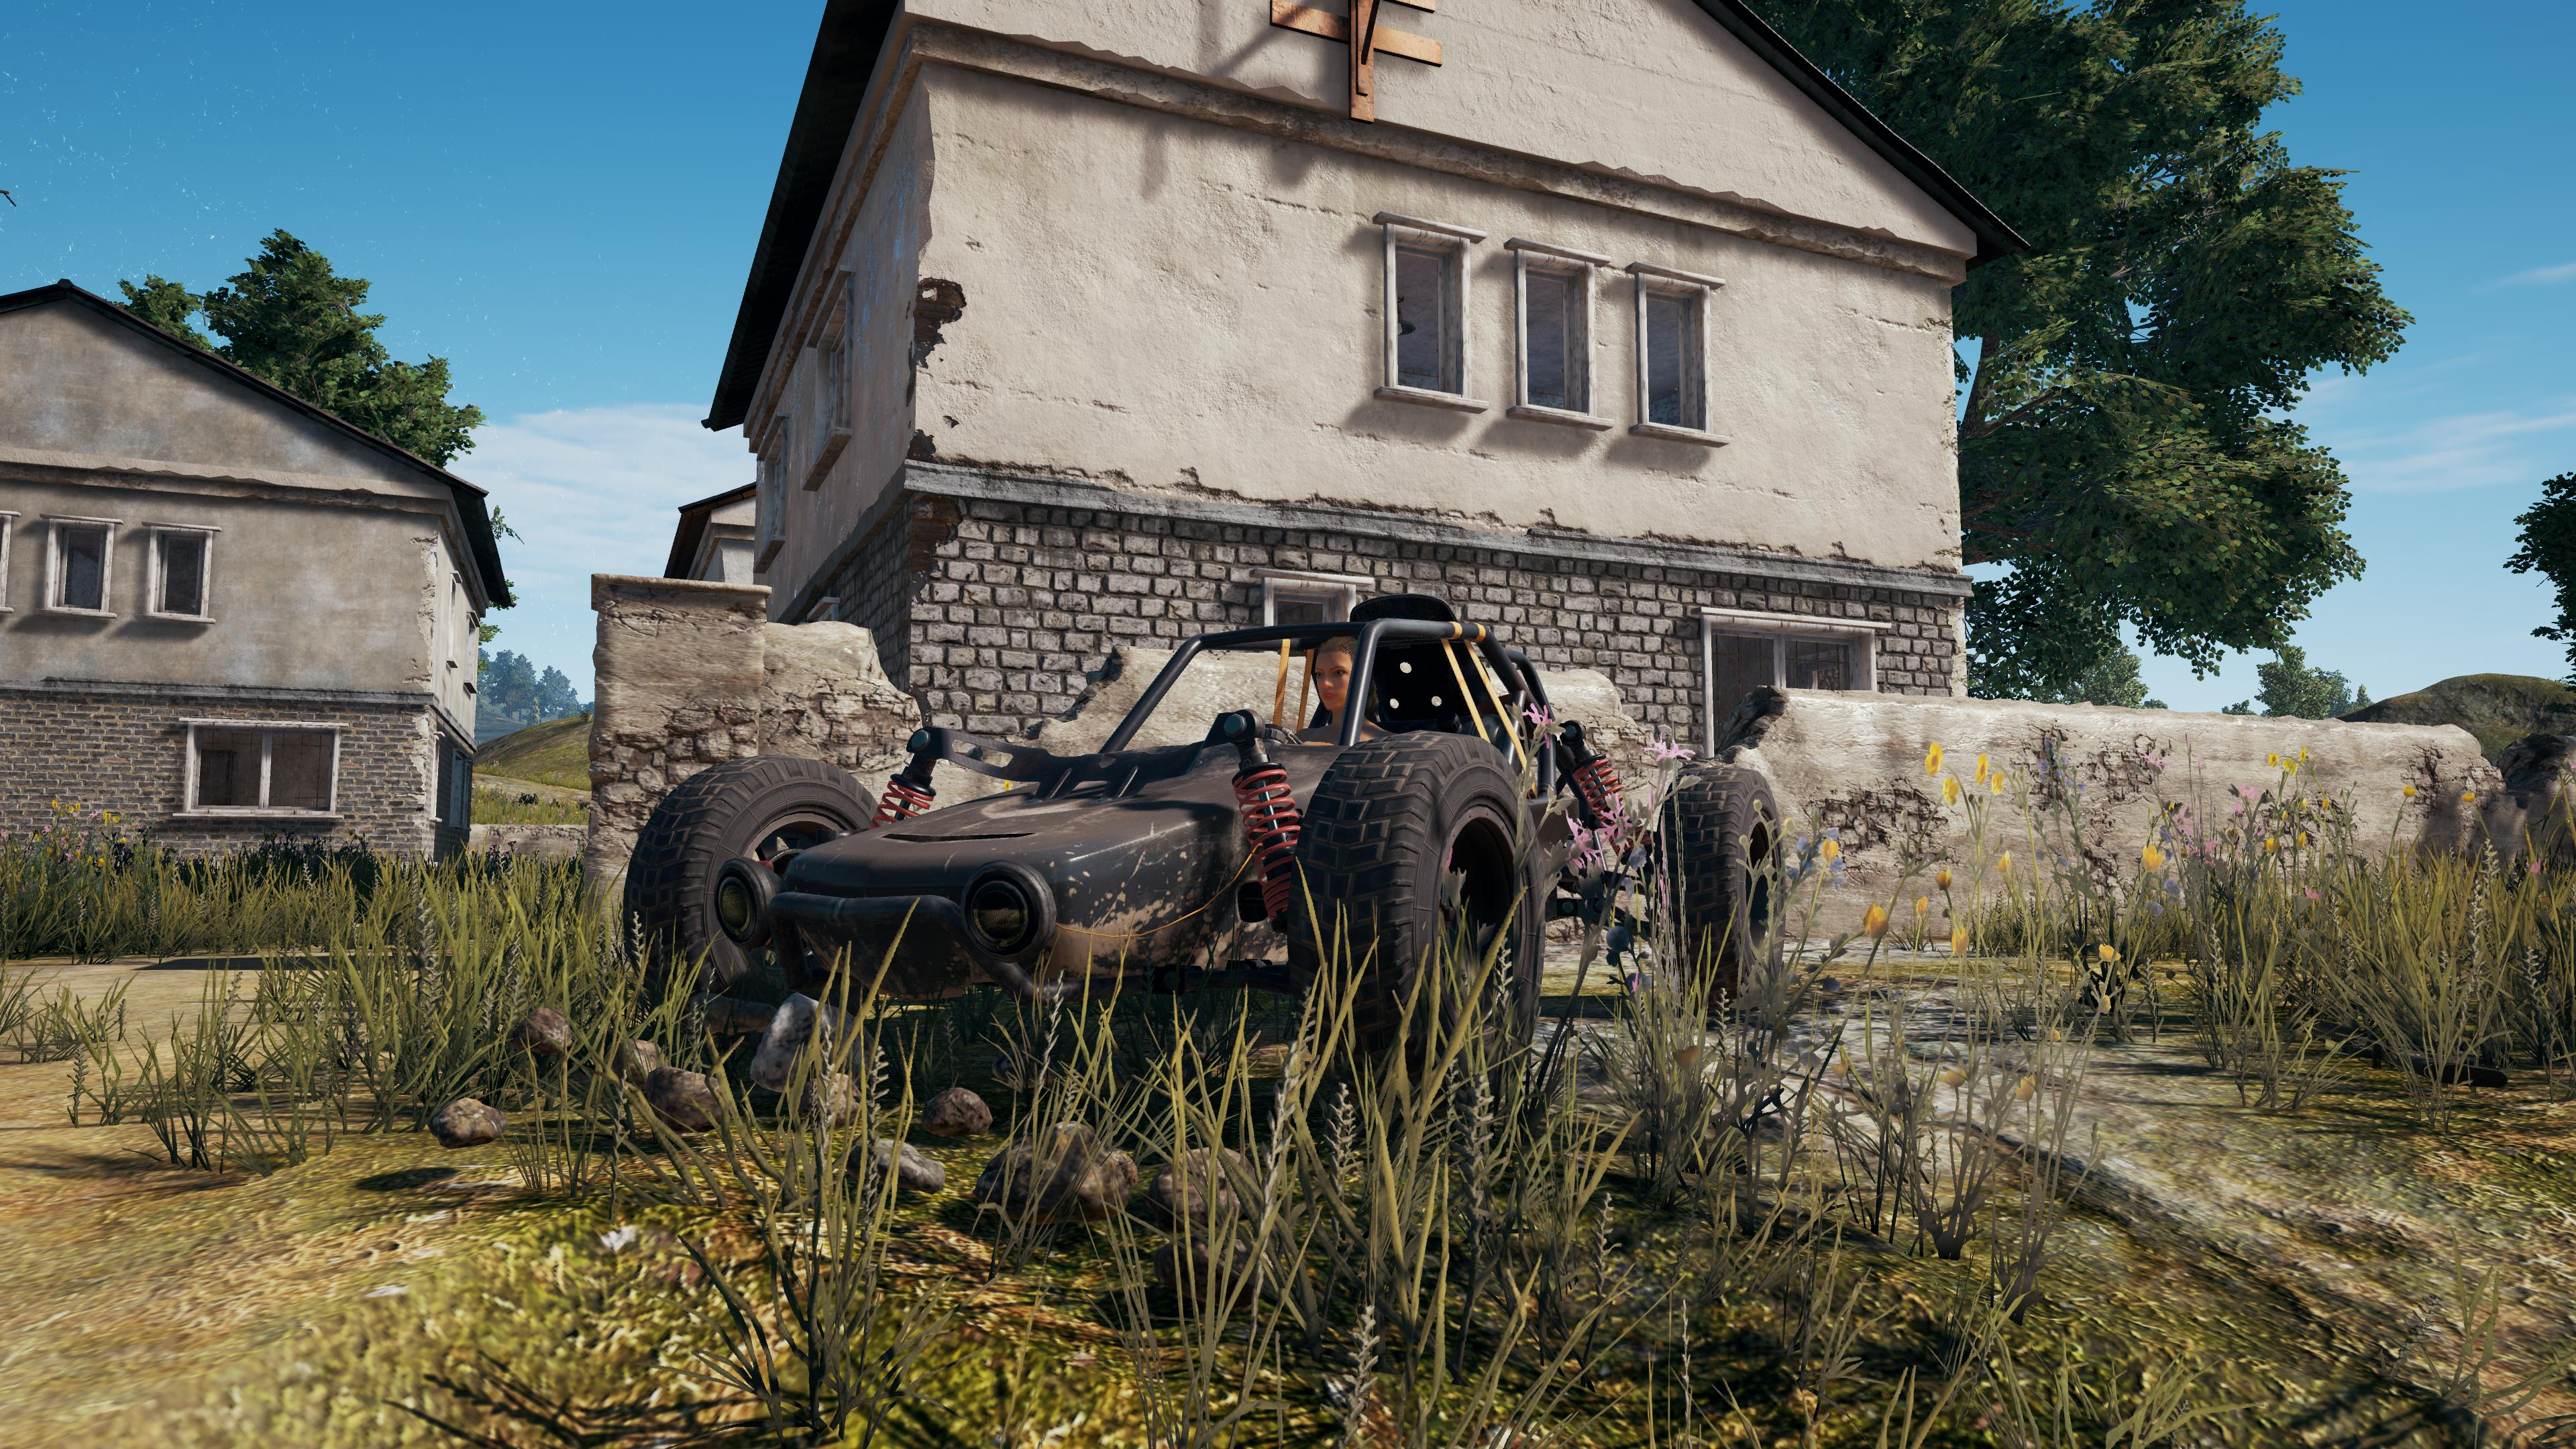 playerunknowns_battlegrounds_hbao + _on_6